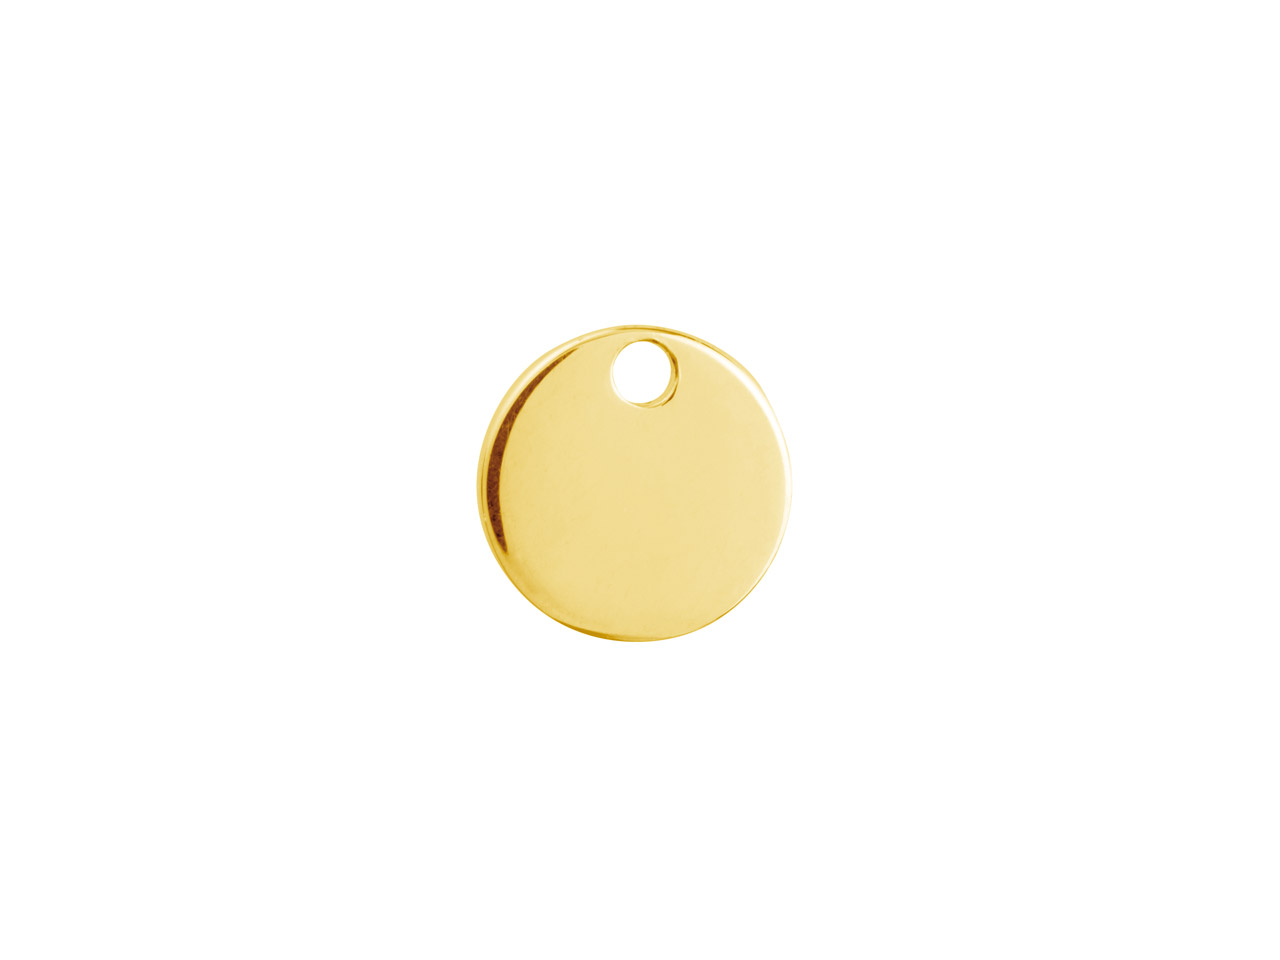 Flan rond un trou 10 mm, Gold filled 14k